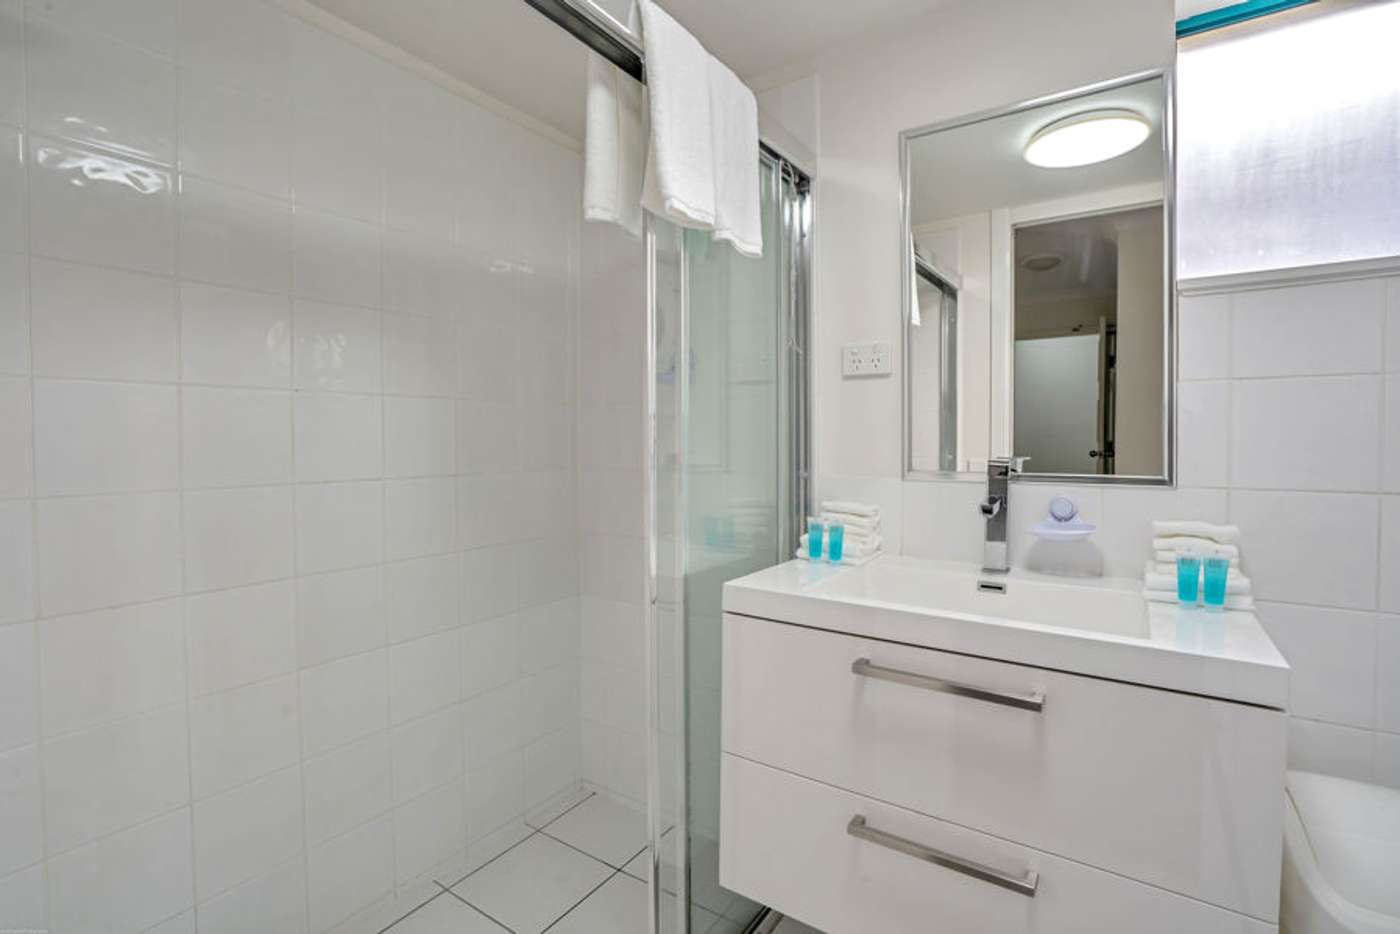 Sixth view of Homely unit listing, 35/112-116 Surf Parade, Broadbeach QLD 4218